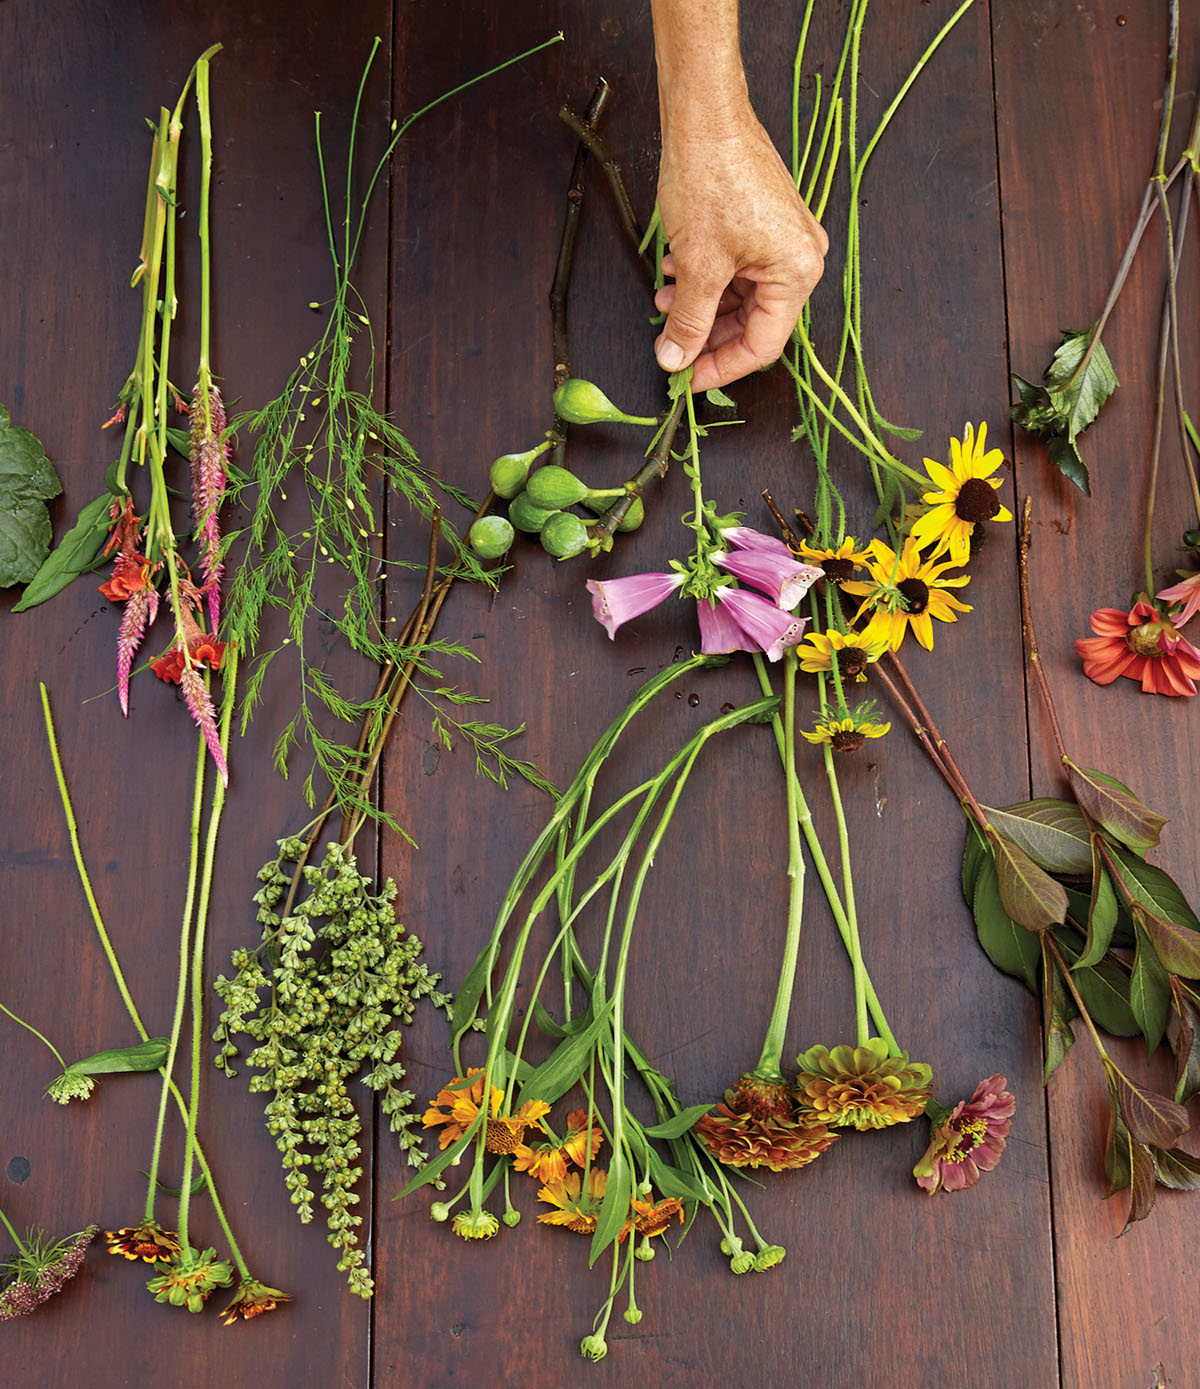 flowers and foliage for Kappi Naftel's floral tutorial laid out on a wooden work surface